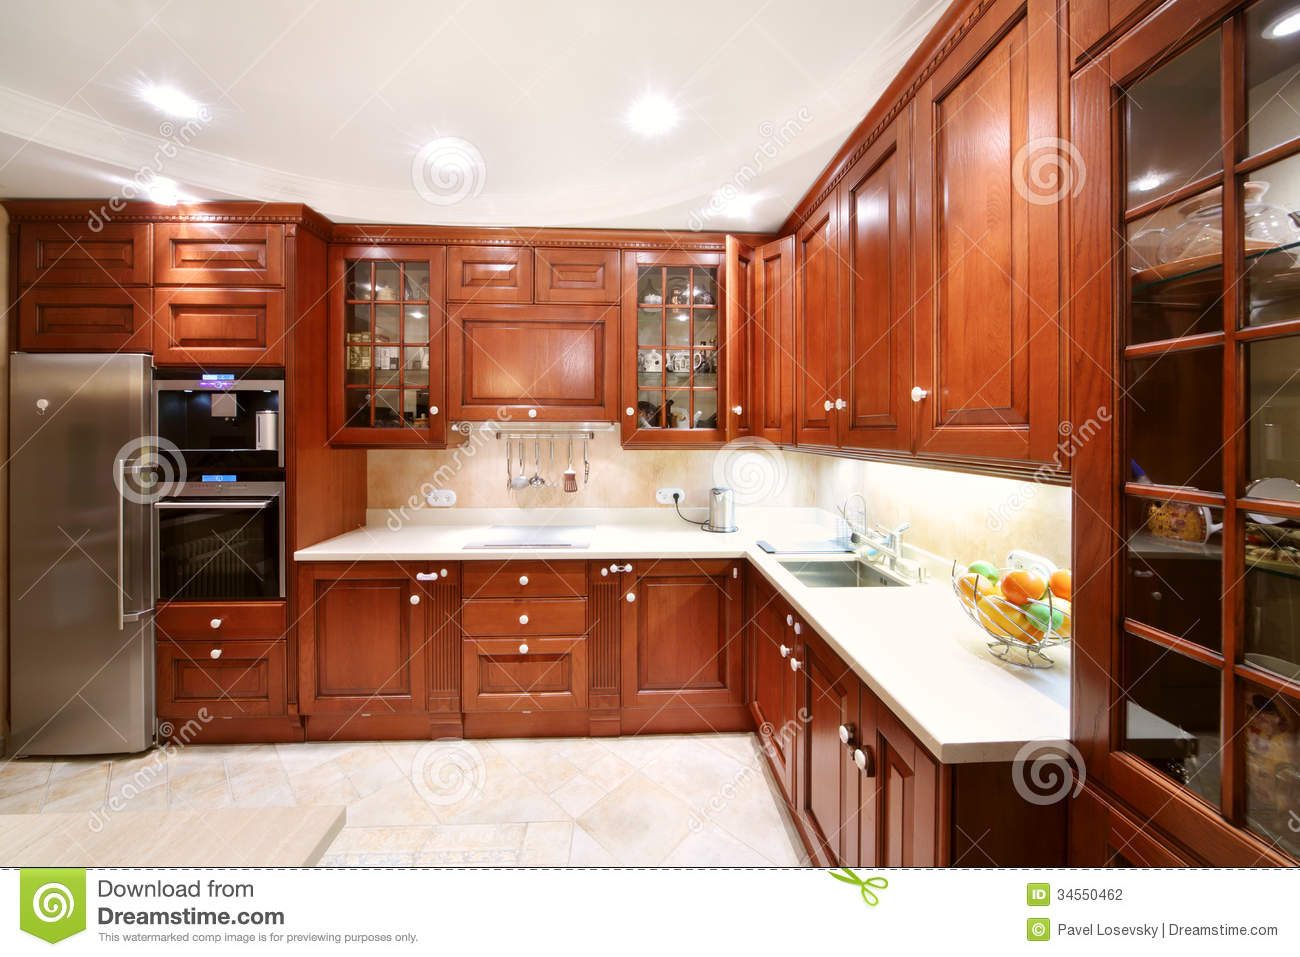 Simple wooden kitchen cupboards countertops refrigerator for Cupboard in the kitchen